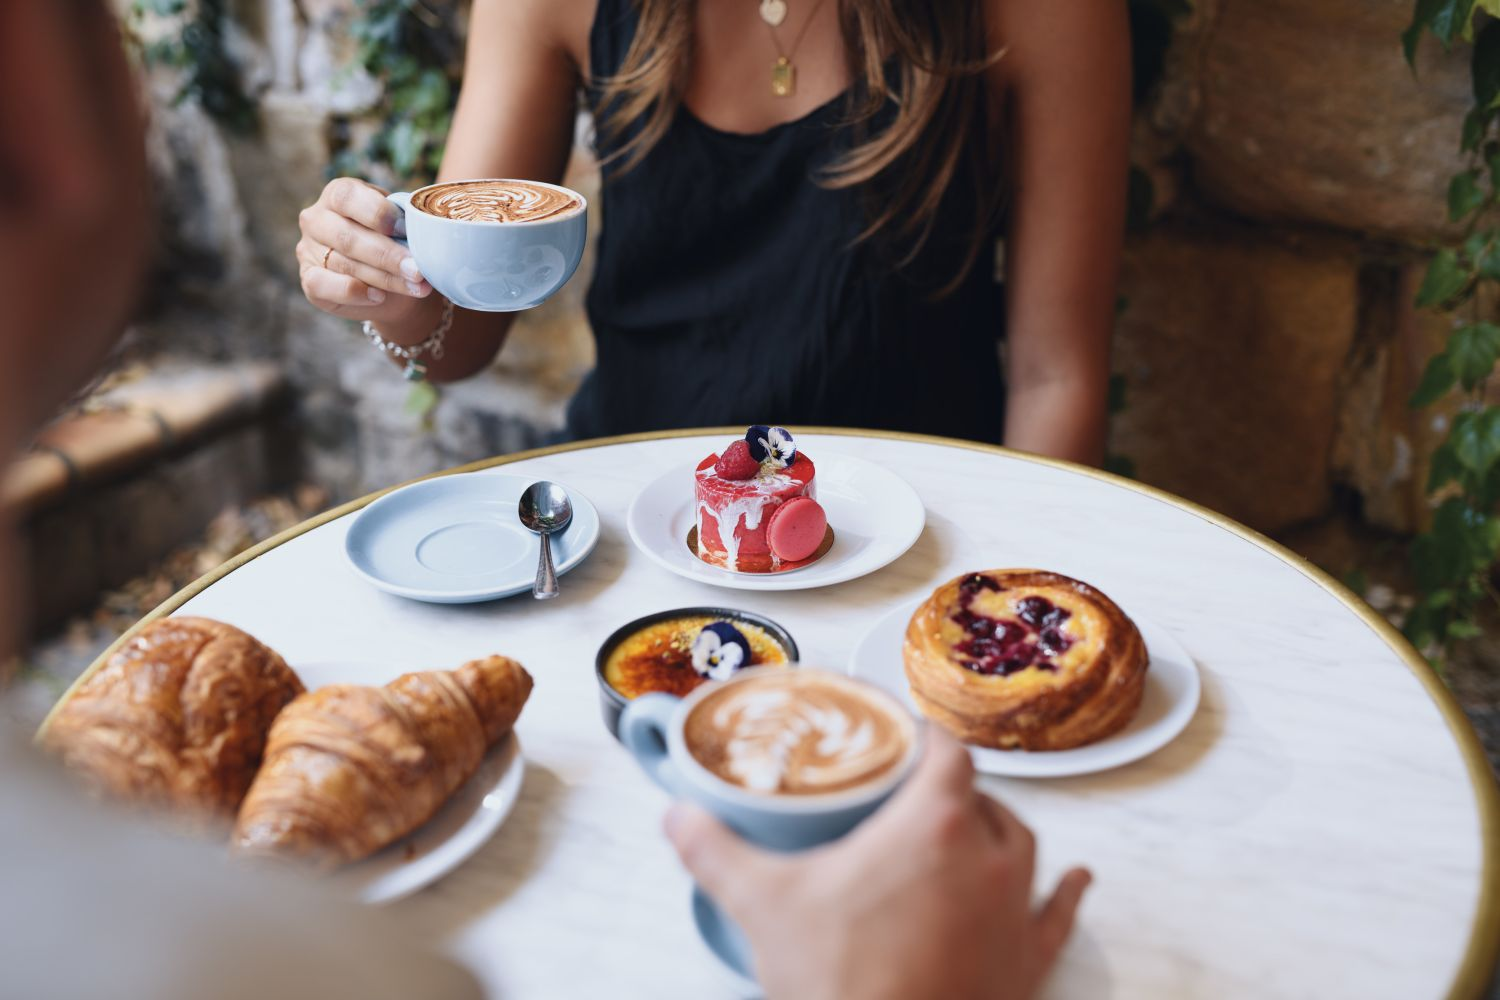 Woman enjoying coffee and pastries at La Renaissance Patisserie and Cafe, The Rocks